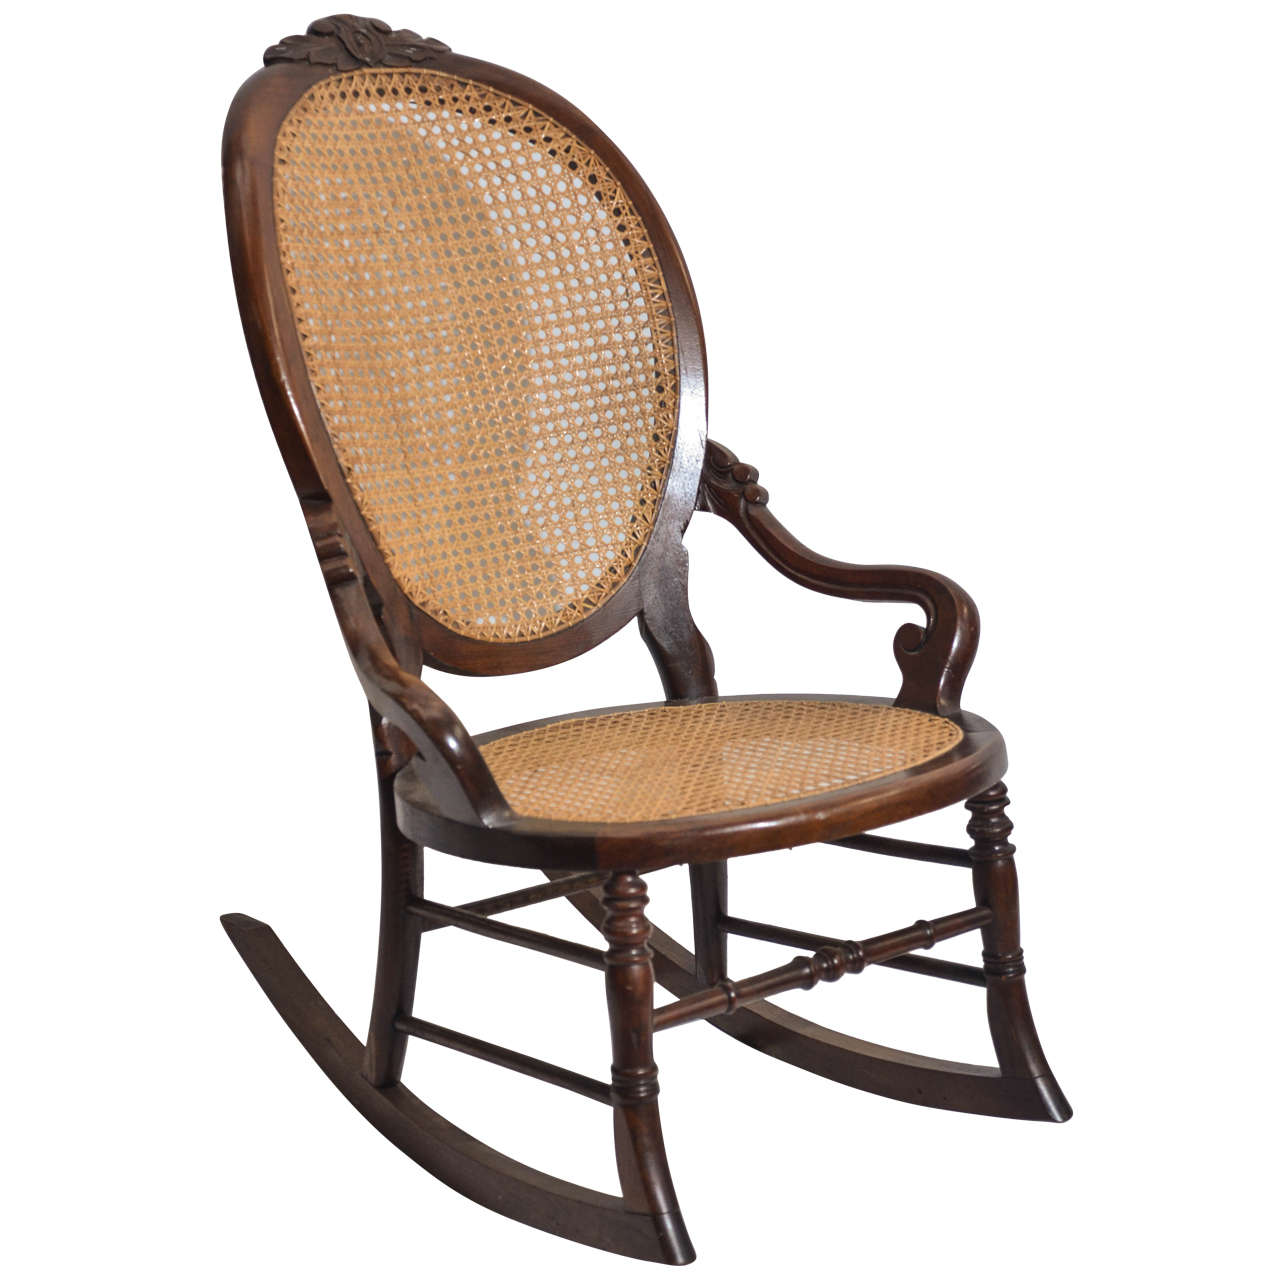 antique rocking chairs for sale wedding chair covers wholesale canada victorian walnut ladys at 1stdibs